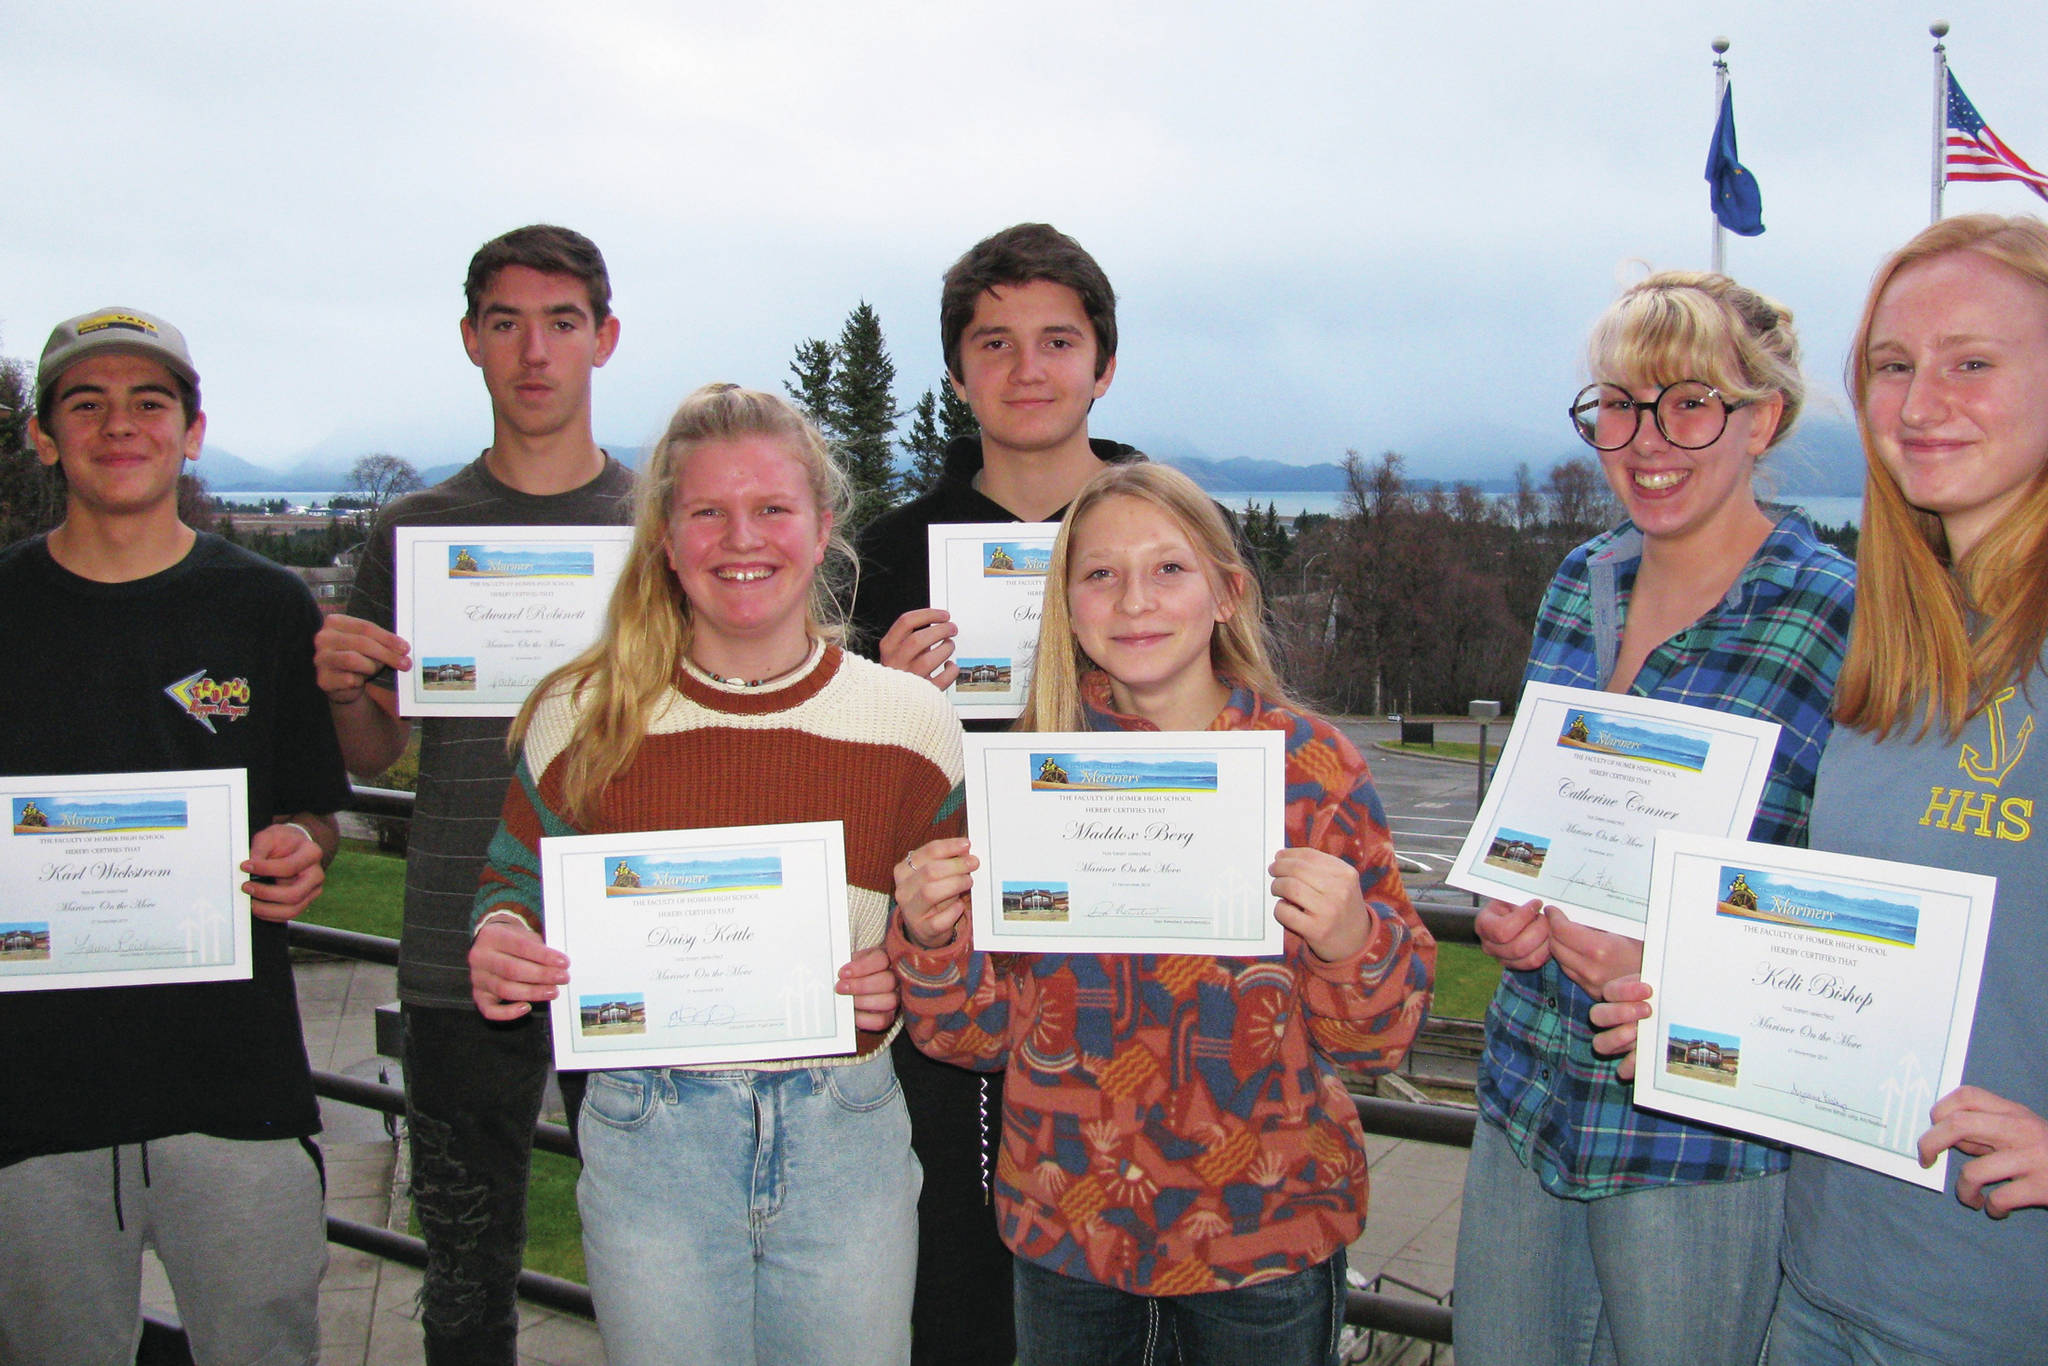 From left to right: Karl Wickstrom, Eddie Robinett, Daisy Kettle, Sam Cary, Maddox Berg, Catherine Conner and Kelli Bishop pose for a photo after being awarded this quarter's Mariners on the Move in this undated photo at Homer High School in Homer, Alaska. Not pictured: Skyler Rodriguez. (Photo courtesy Paul Story)